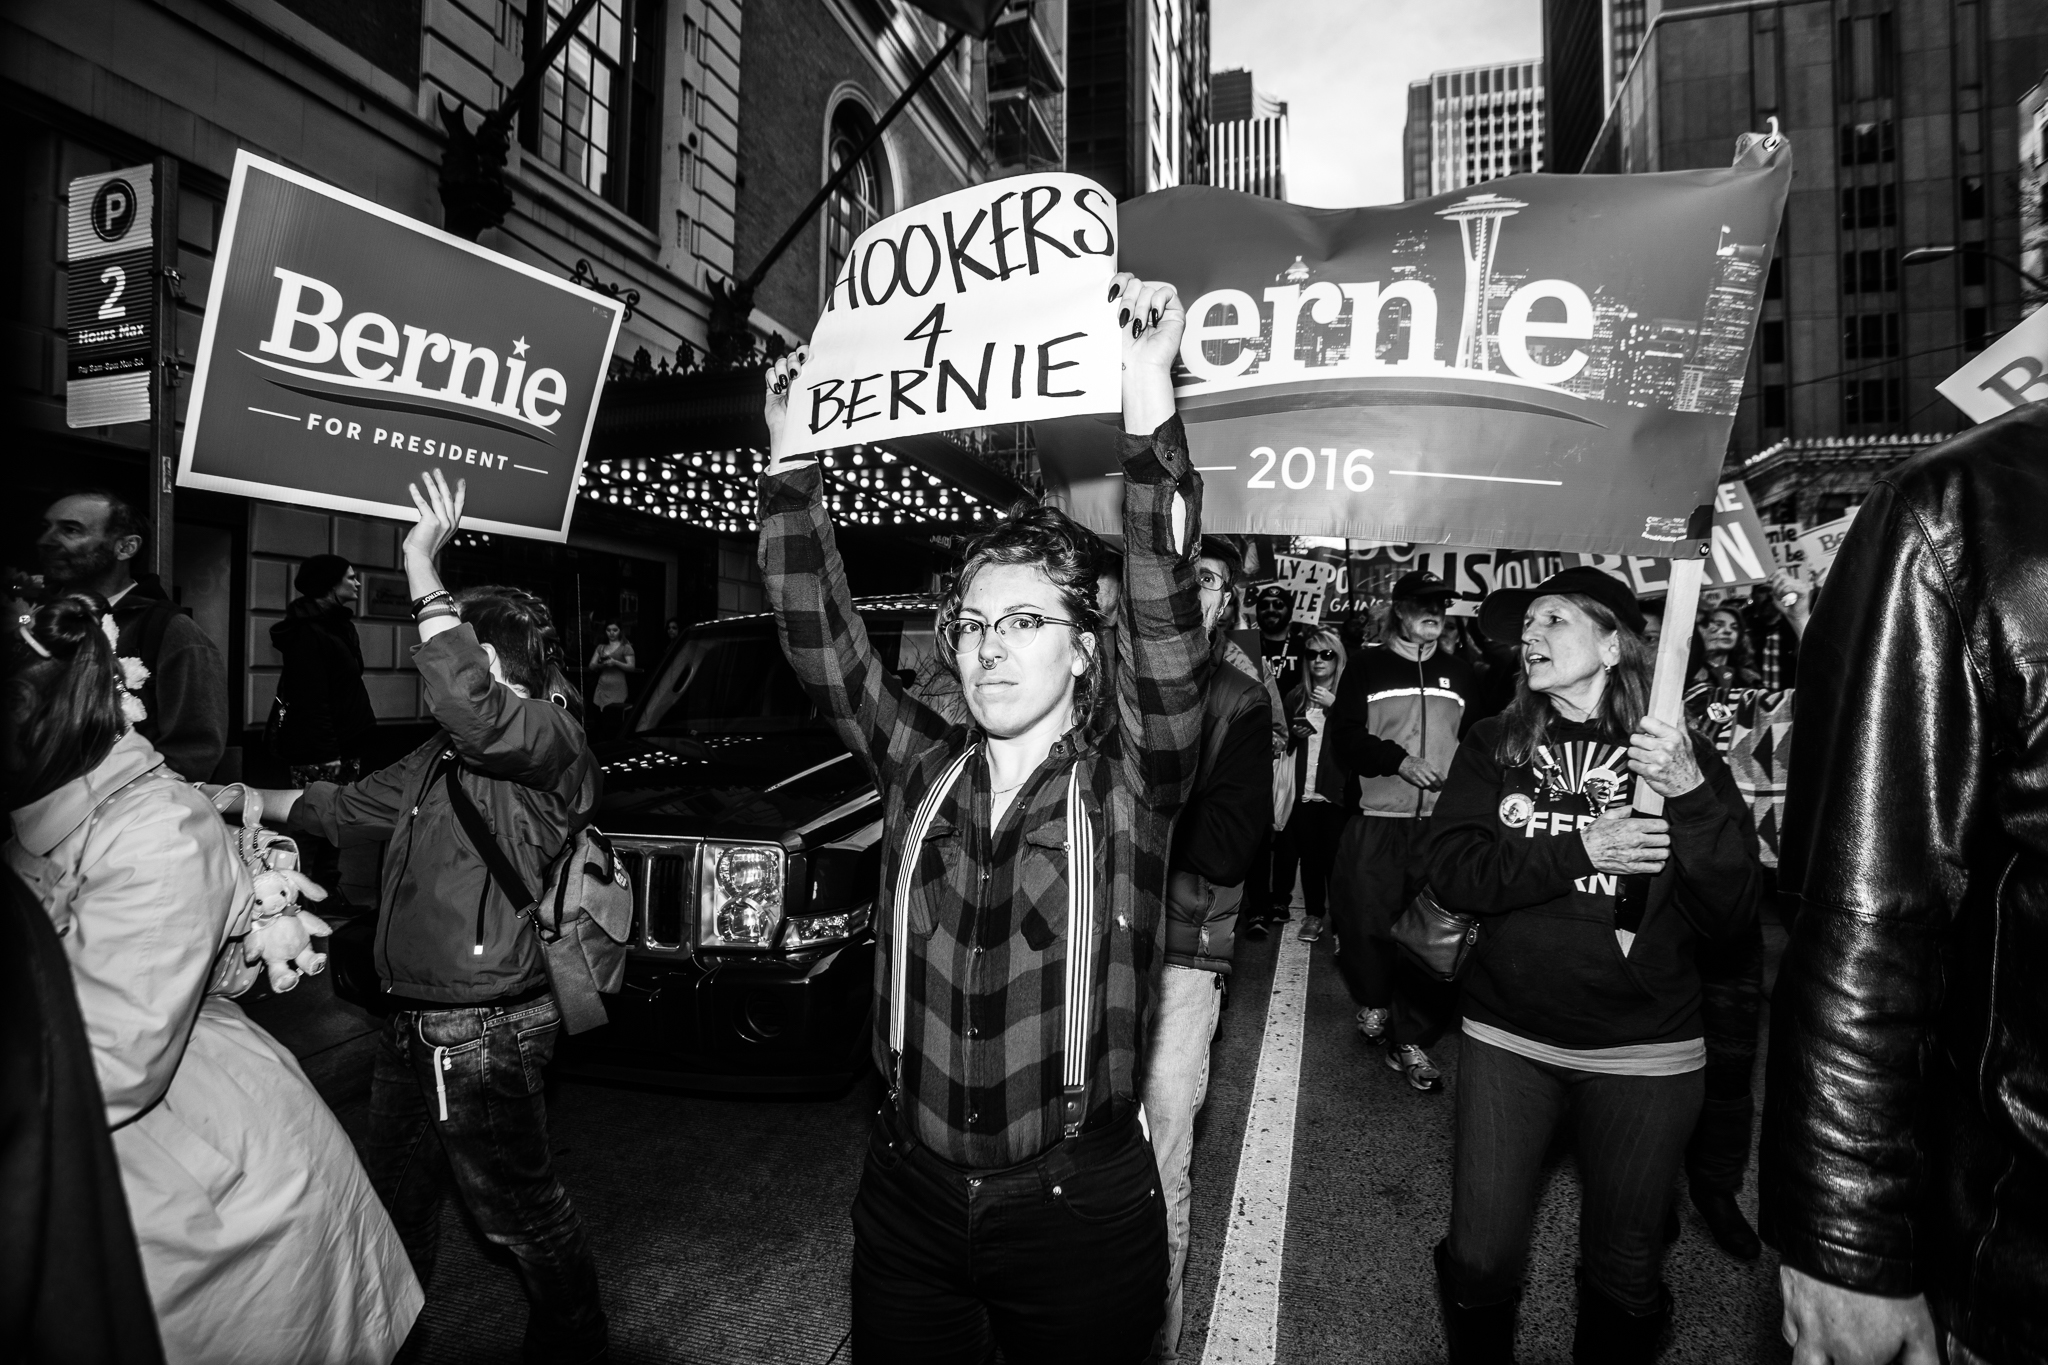 Supporters walk in a 'March for Bernie' in downtown Seattle on on Feb. 27.